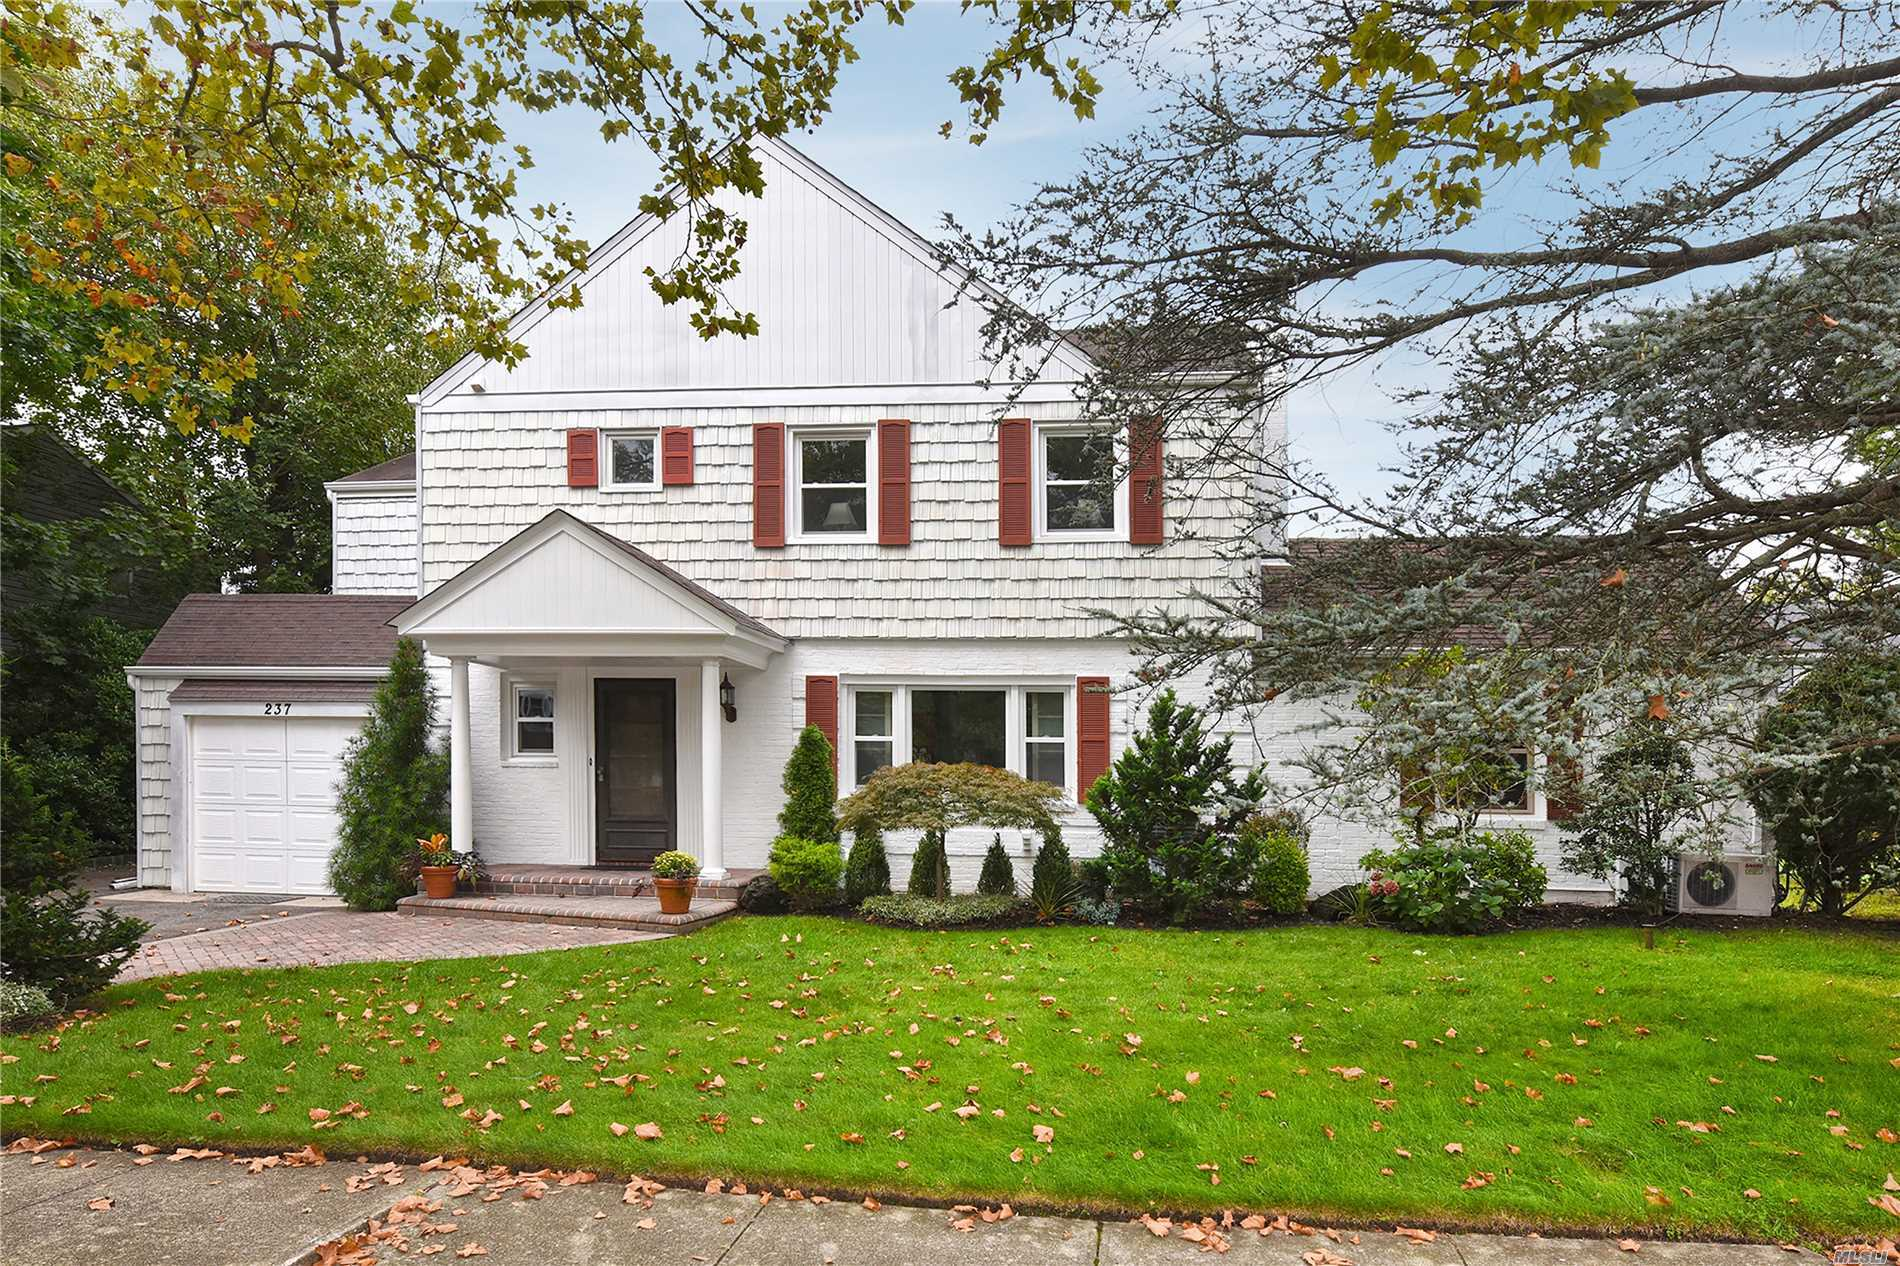 Warm & Welcoming 5 Br, 2.5 Bth Expanded Side Hall Colonial In Sd#20 (Lynbrook).Sunlit Updtd Gran/Wood Eik W/ Garden View, Huge Family Rm W/ Fpl, Enclosed Sun Room W/ Walls Of Windows & Access From Den & Garden. Finished Bsmt Has Wet Bar. Att Gar W/ Built In Storage Cabinets. Pull Down Attic Has 8 ' Ceiling In Center & Cedar Closet. Hw Floors & Crown Moldings.Spacious Yard In Quiet Neighborhood. No Sandy Damage. No Flood Insurance Required. Tax Grievance Submitted For 20/21